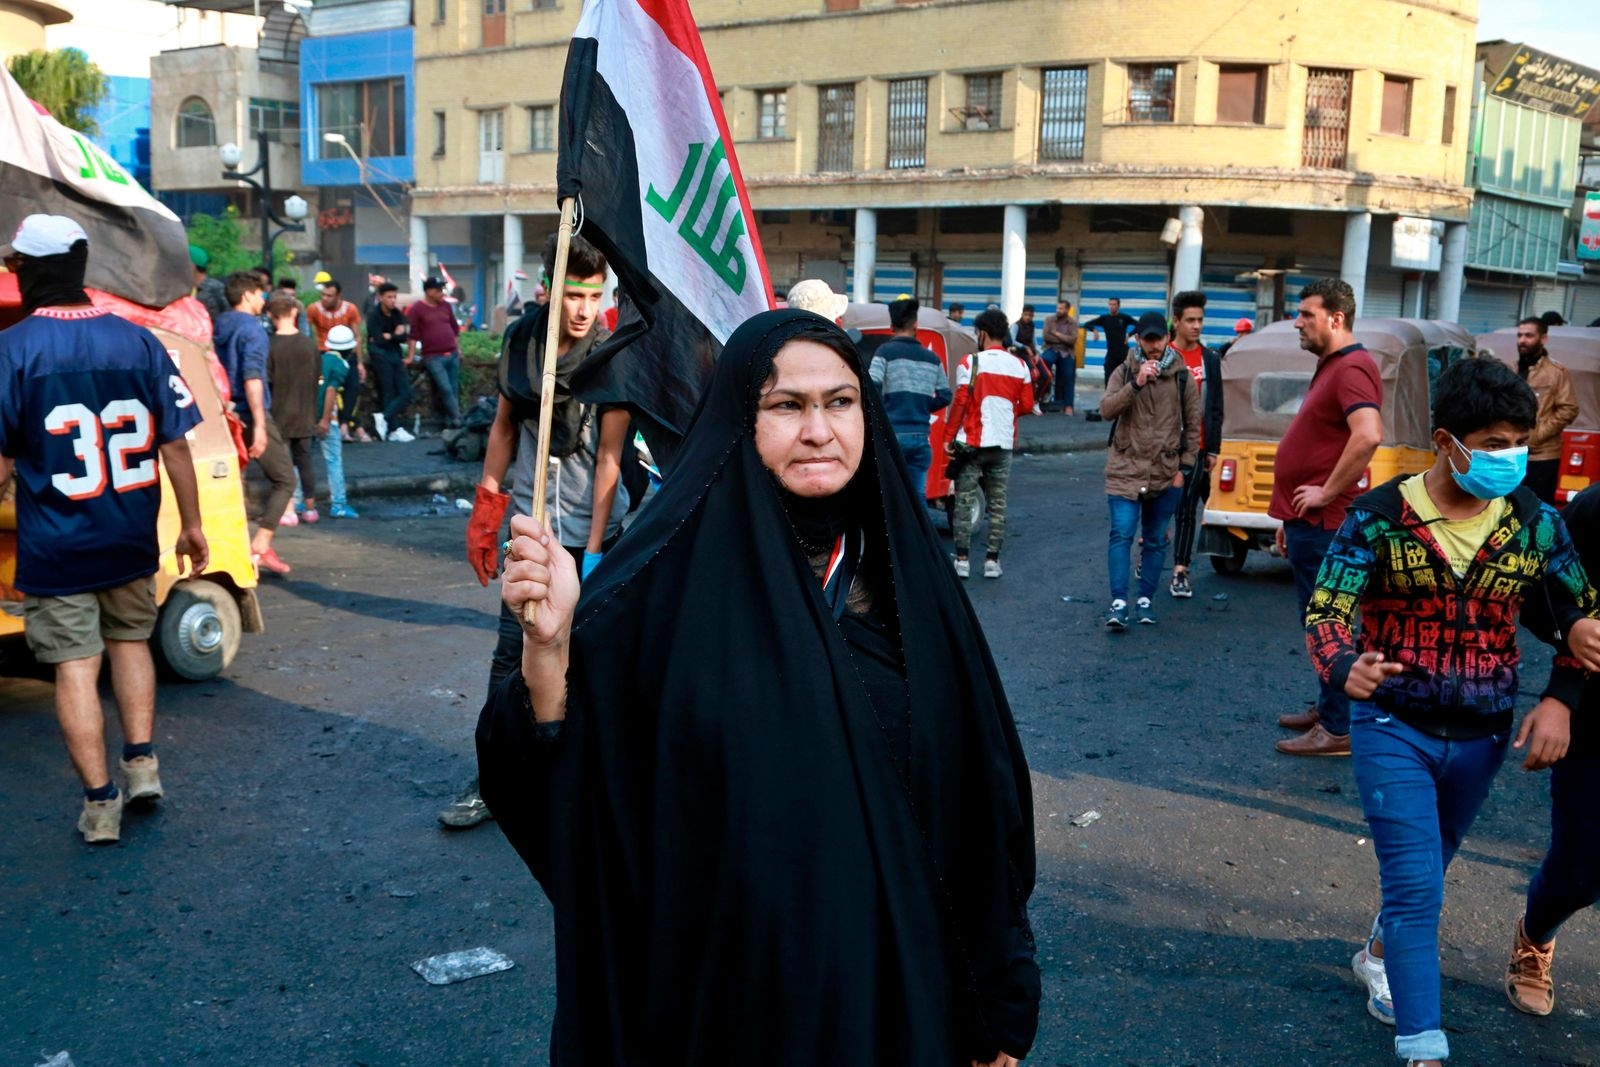 An Iraqi woman holds a national flag while anti-government protesters gather on Rasheed Street during ongoing protests in Baghdad, Iraq, Thursday, Nov. 28, 2019. Scores of protesters have been shot dead in the last 24 hours, amid spiraling violence in Baghdad and southern Iraq, officials said. (AP Photo/Khalid Mohammed)